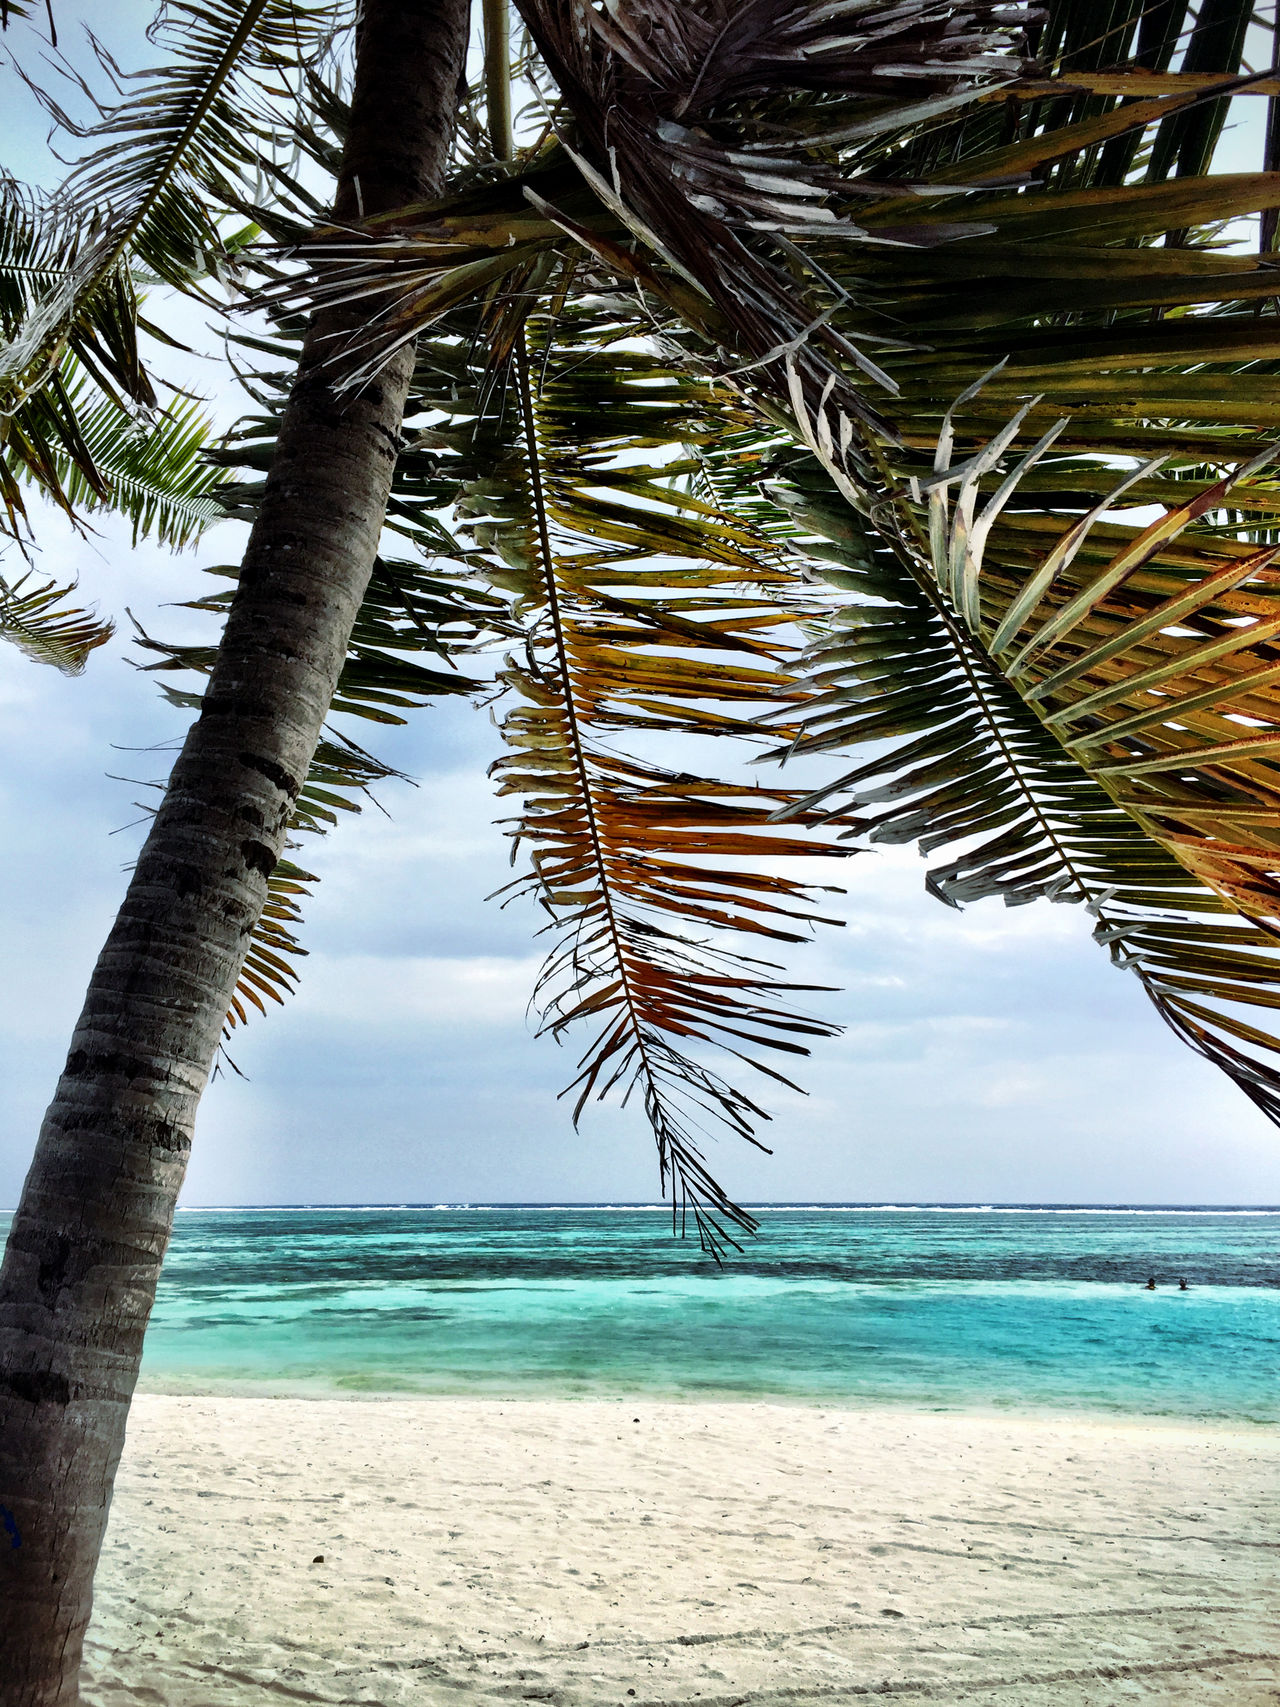 Maldives Atoll Beach Beachphotography Life Is A Beach Peace And Quiet Sea And Sky Palm Trees Blue Water Crystal Clear Waters